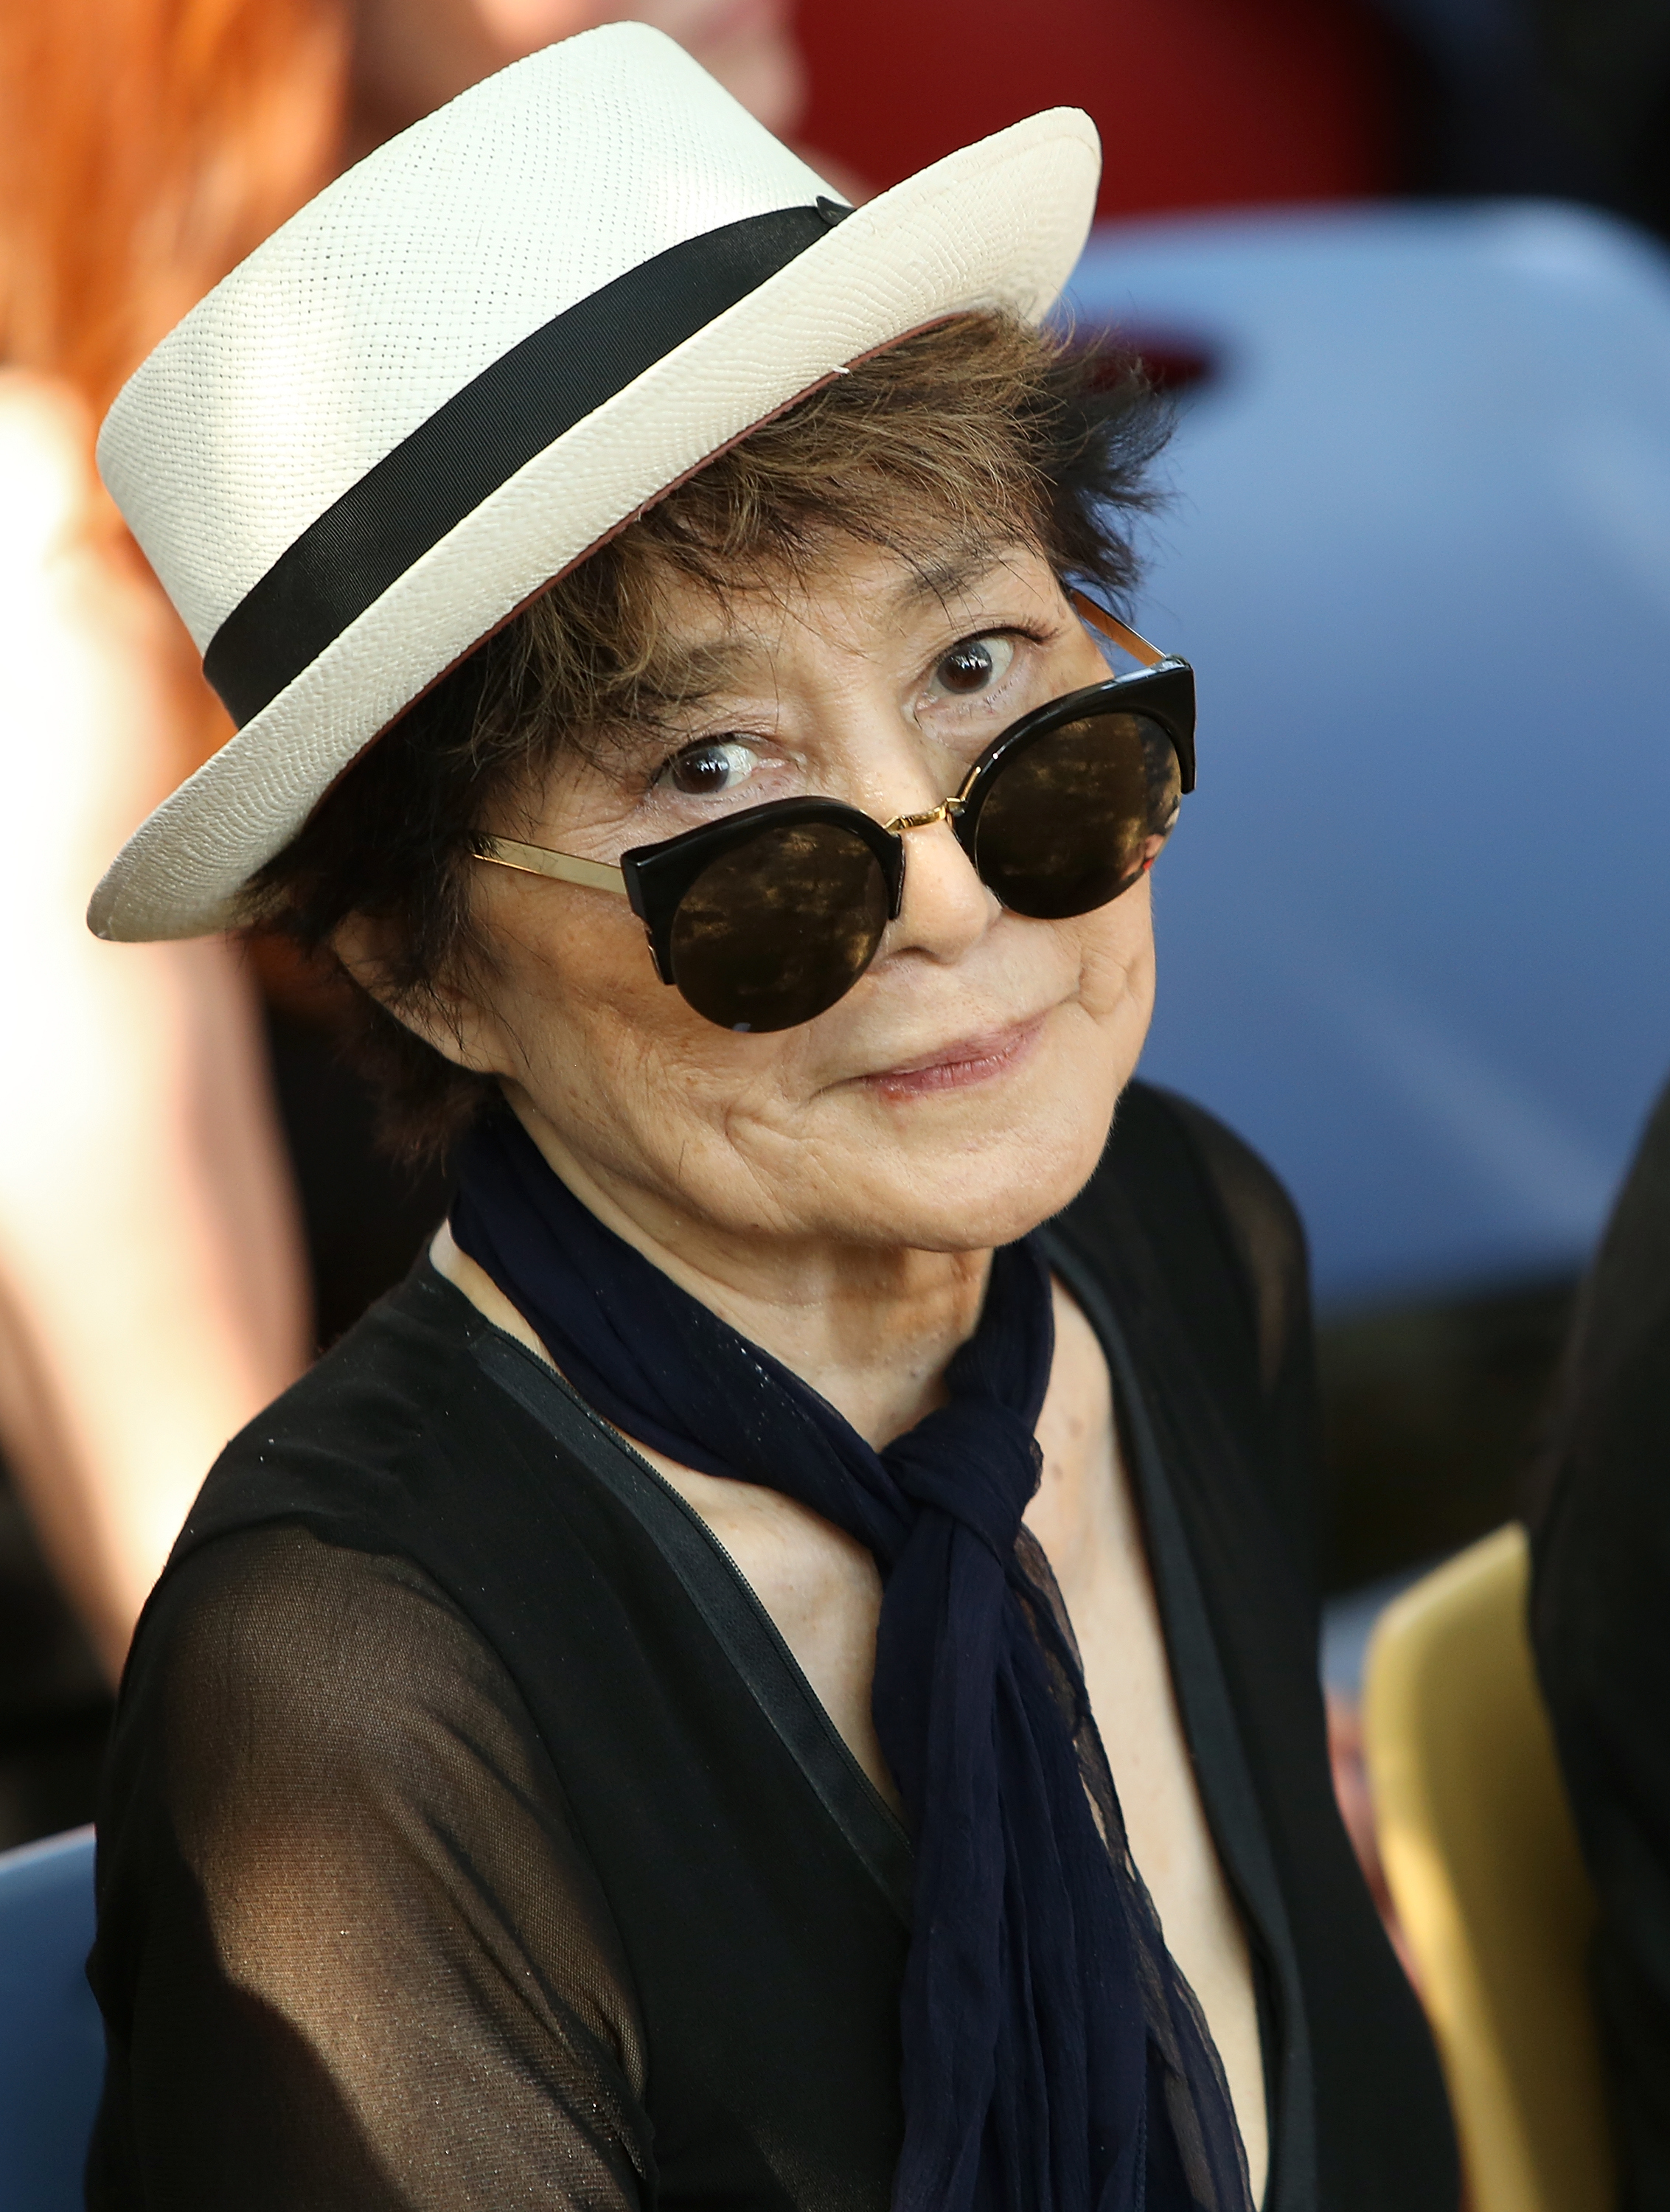 Yoko Ono attends the Amnesty International Tapestry Honoring John Lennon Unveiling on July 29, 2015 in New York City.